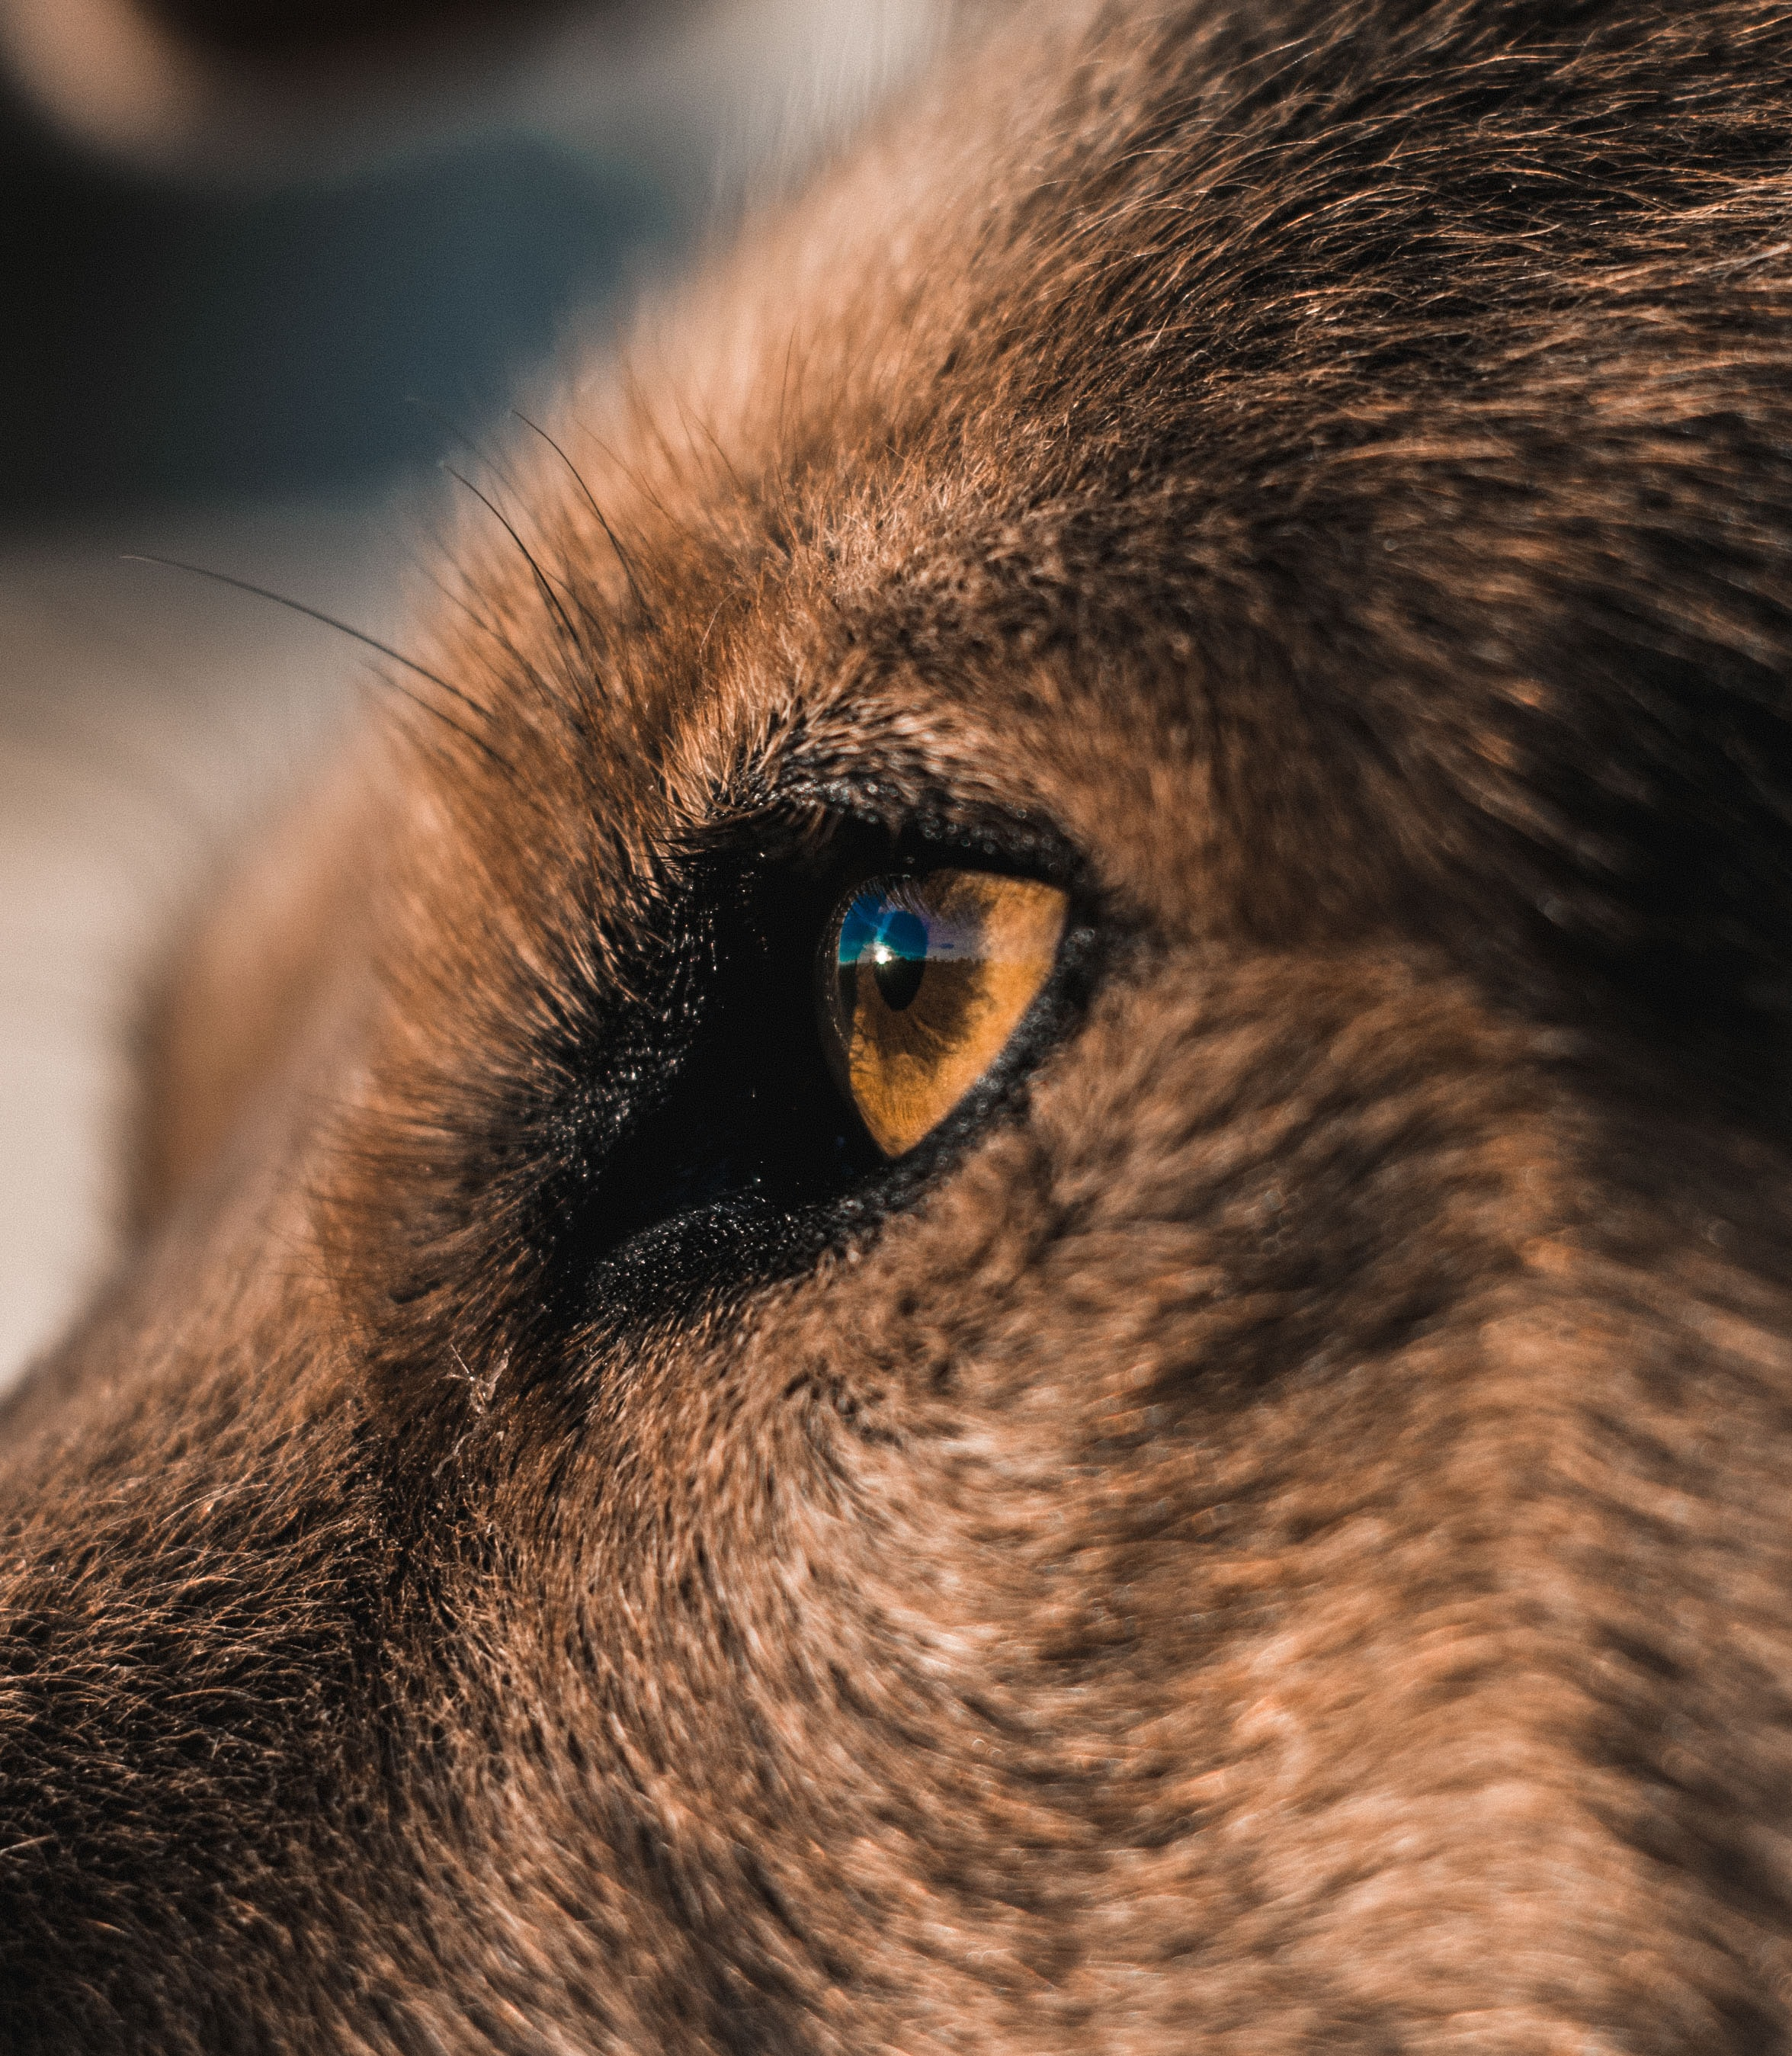 close-up photography of animal eye